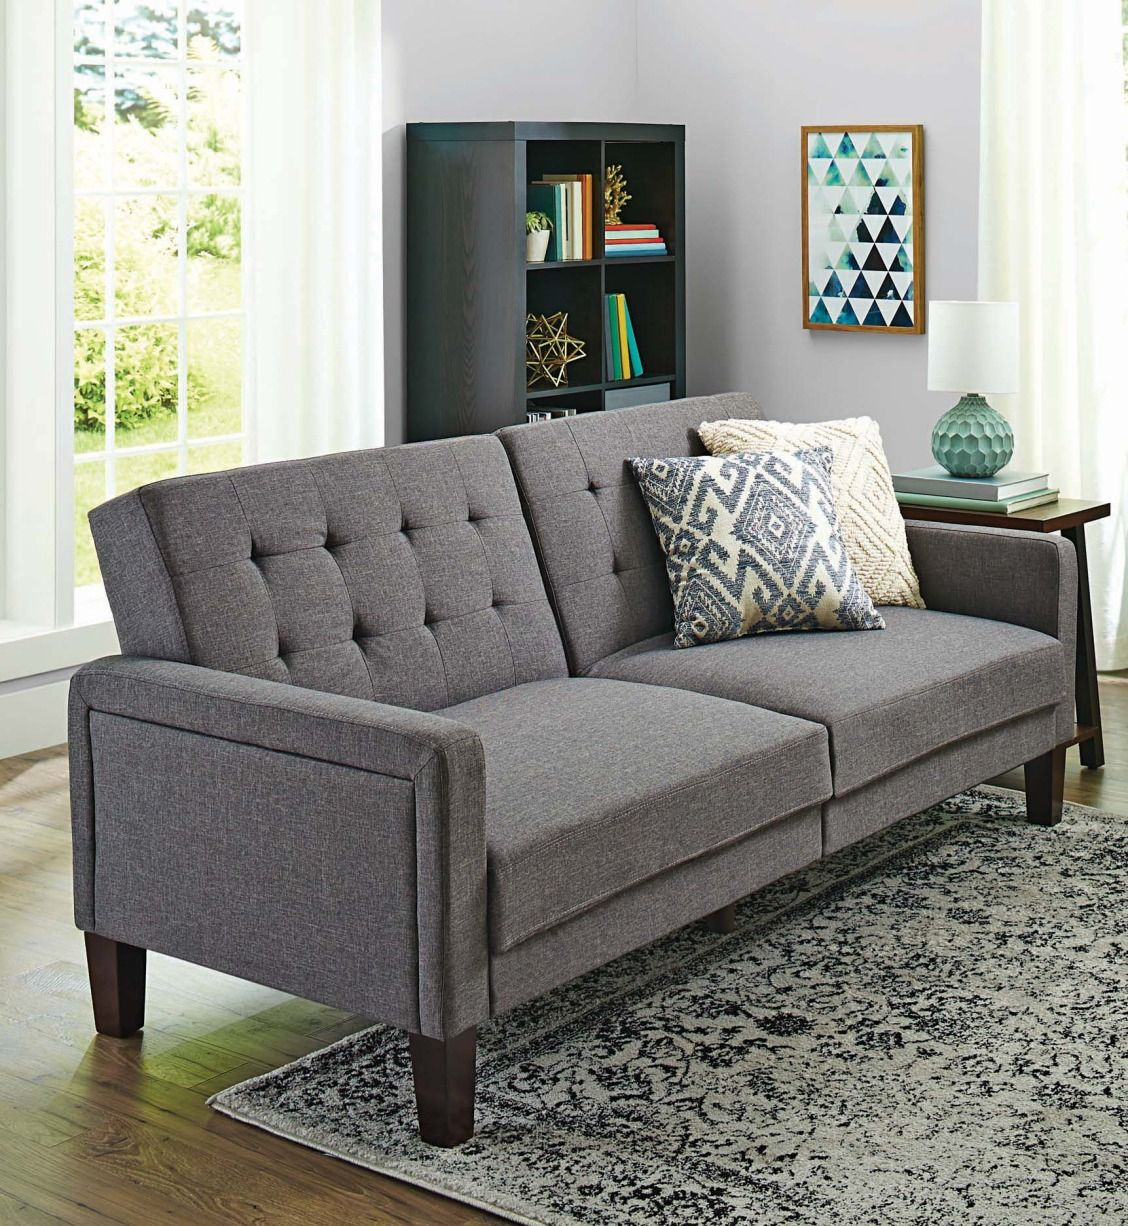 porter futon porter futon   affordable furniture   pinterest   affordable      rh   pinterest